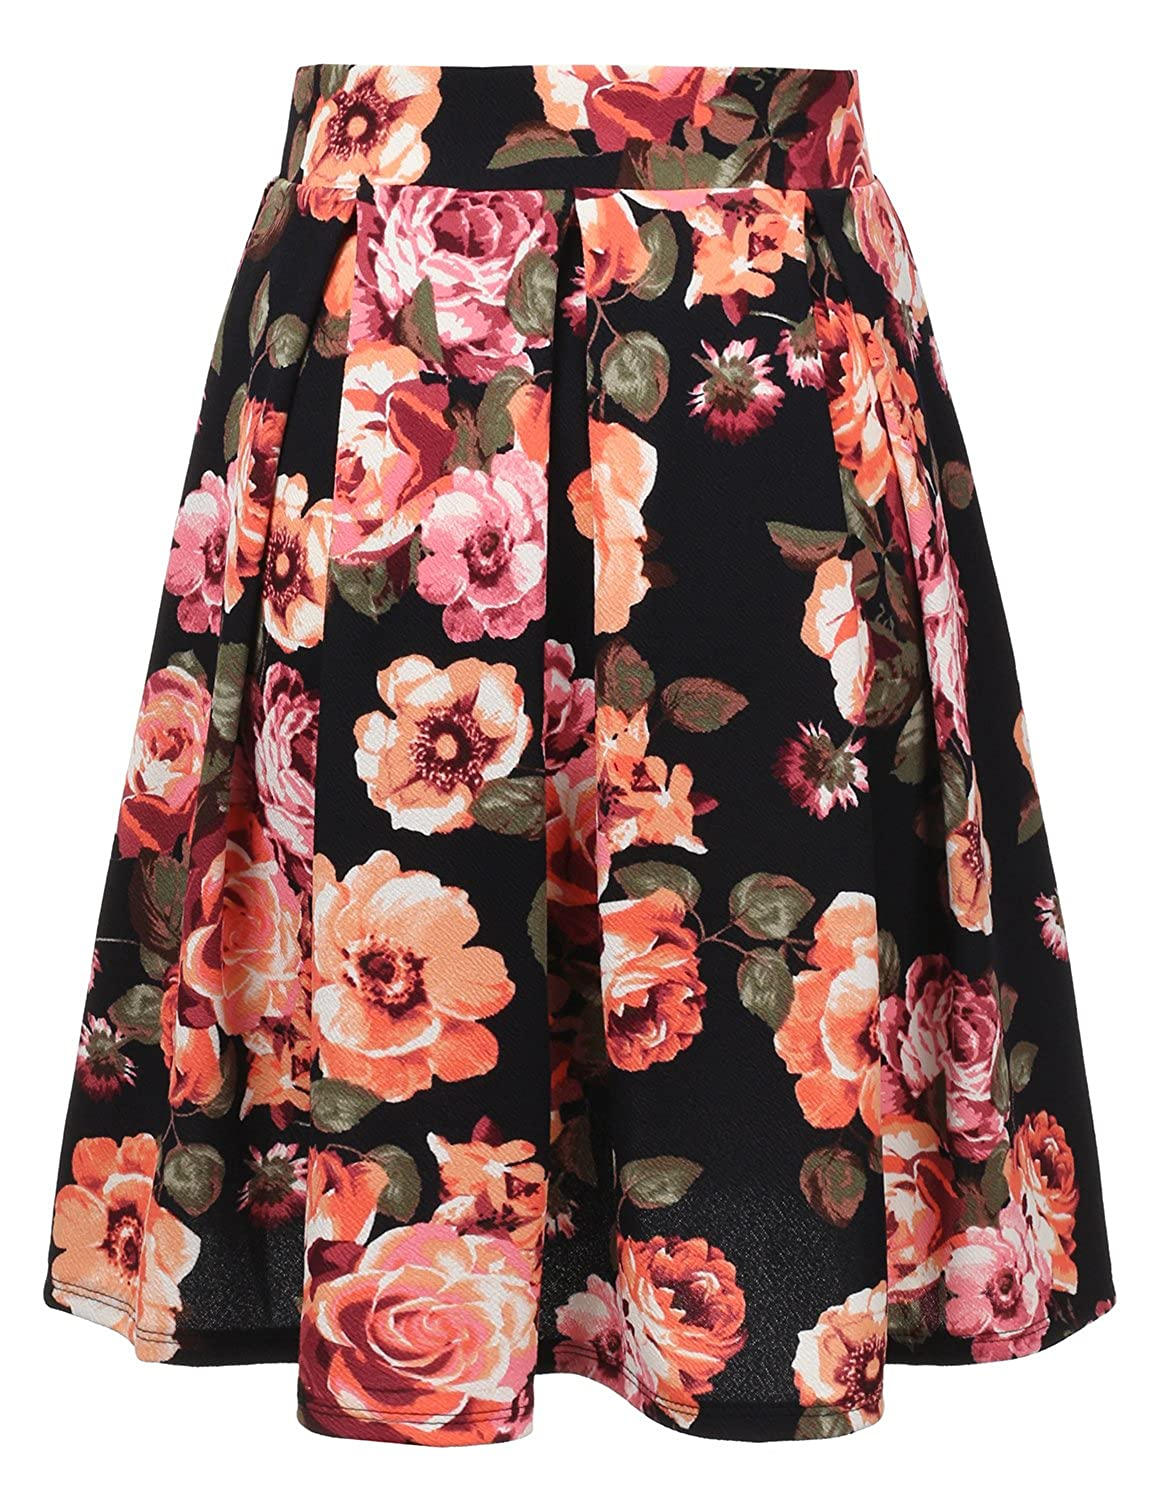 2a170f058b4bc Doublju Elastic Waist Flare Pleated Skater Midi Skirt for Women with Plus  Size CWBMS013